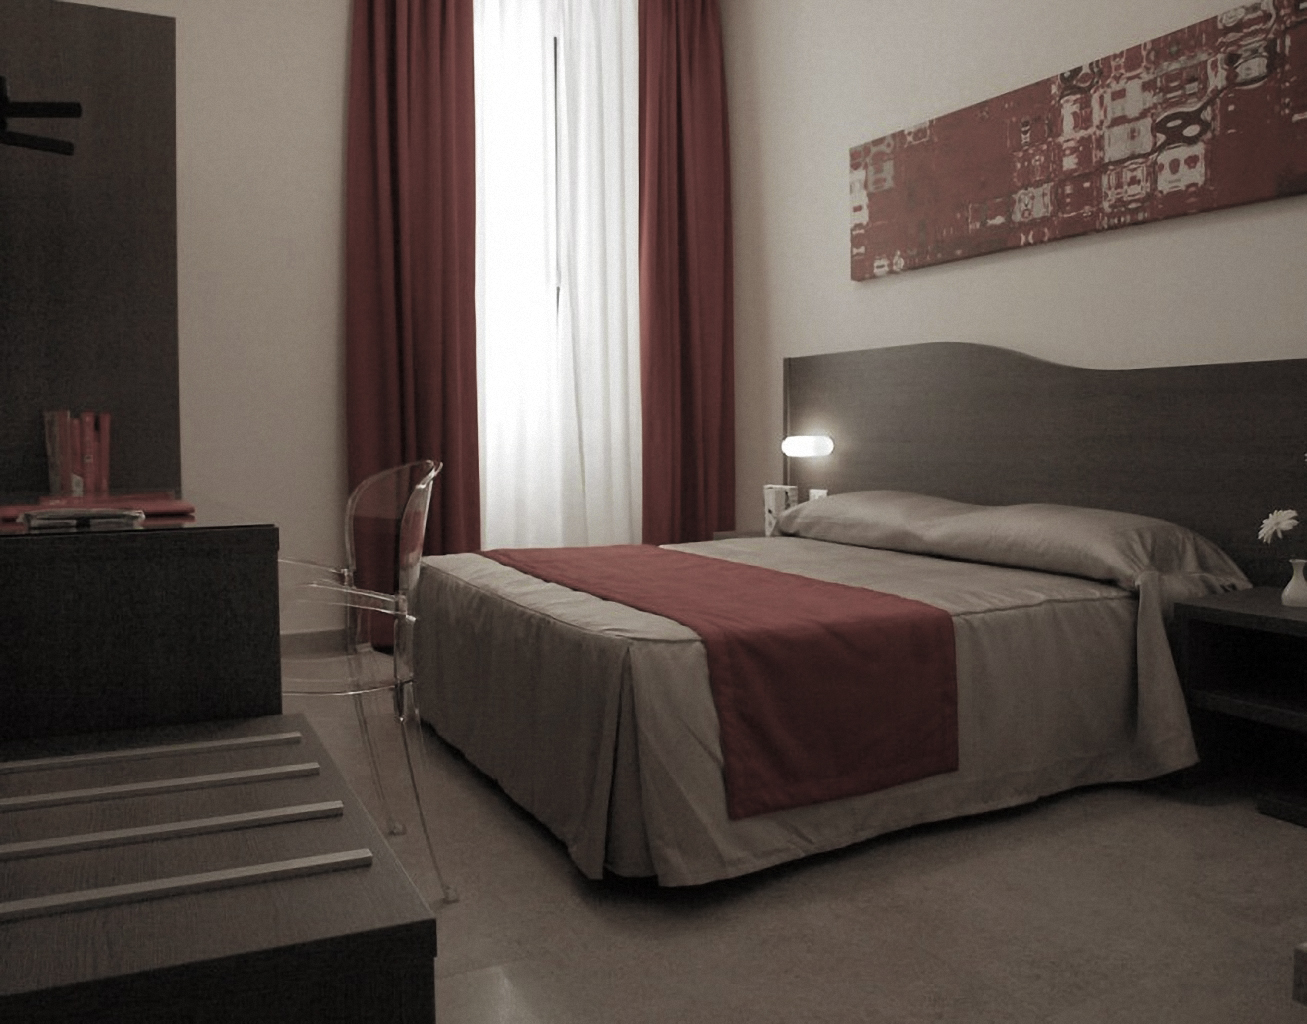 Arredamento Bed Breakfast A La Spezia